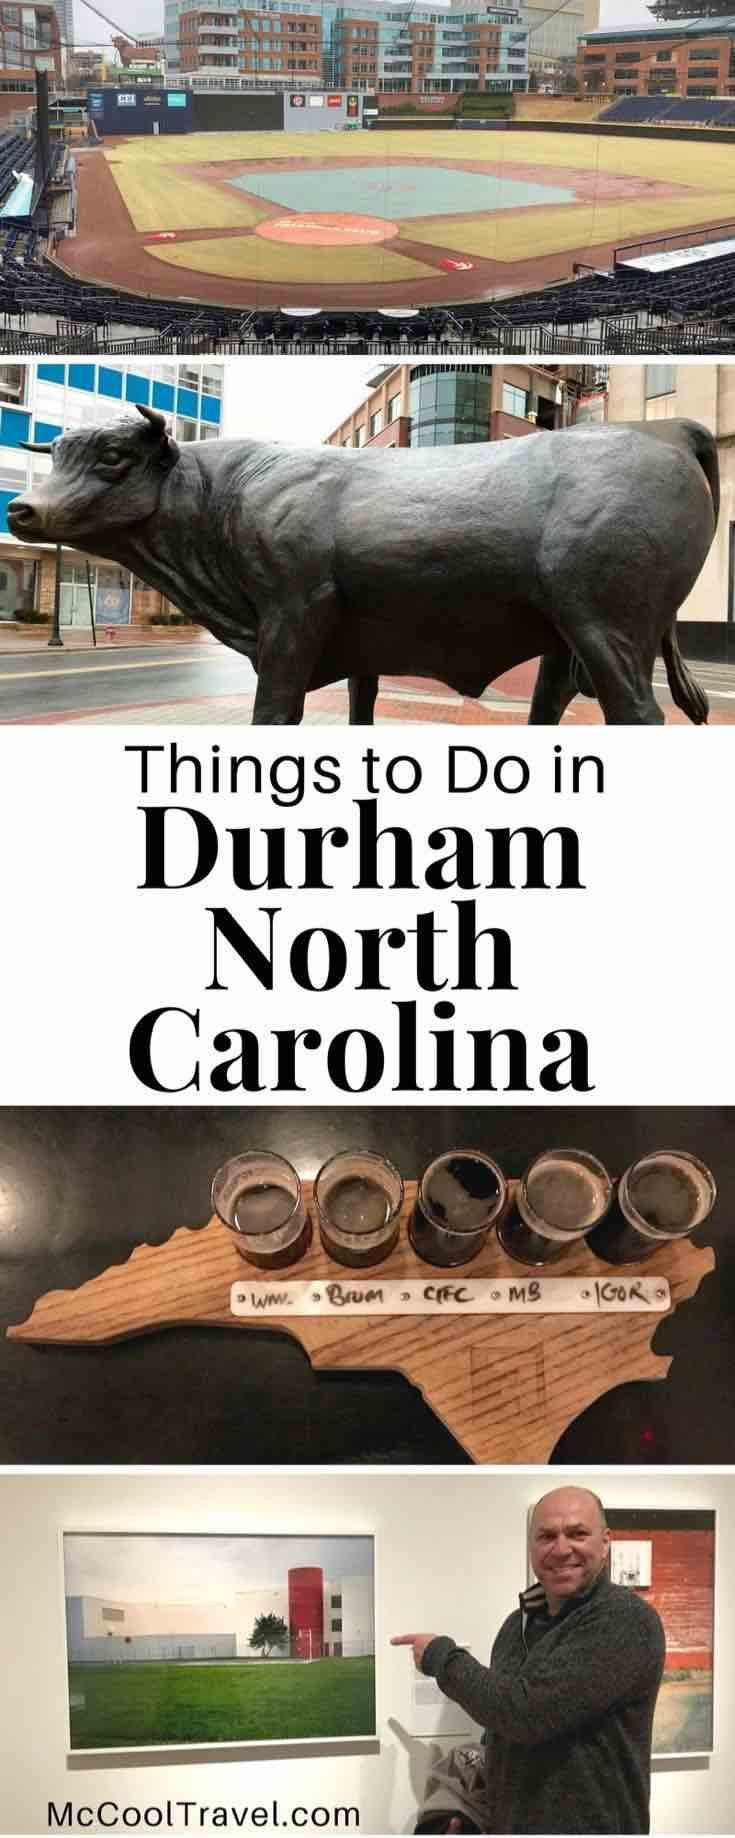 Durham North Carolina USA. Things to do in Durham North Carolina include a vibrant scene of arts, local cuisine and craft beverages, historic preservation and recognition. #TravelDestinationsUsaTexas